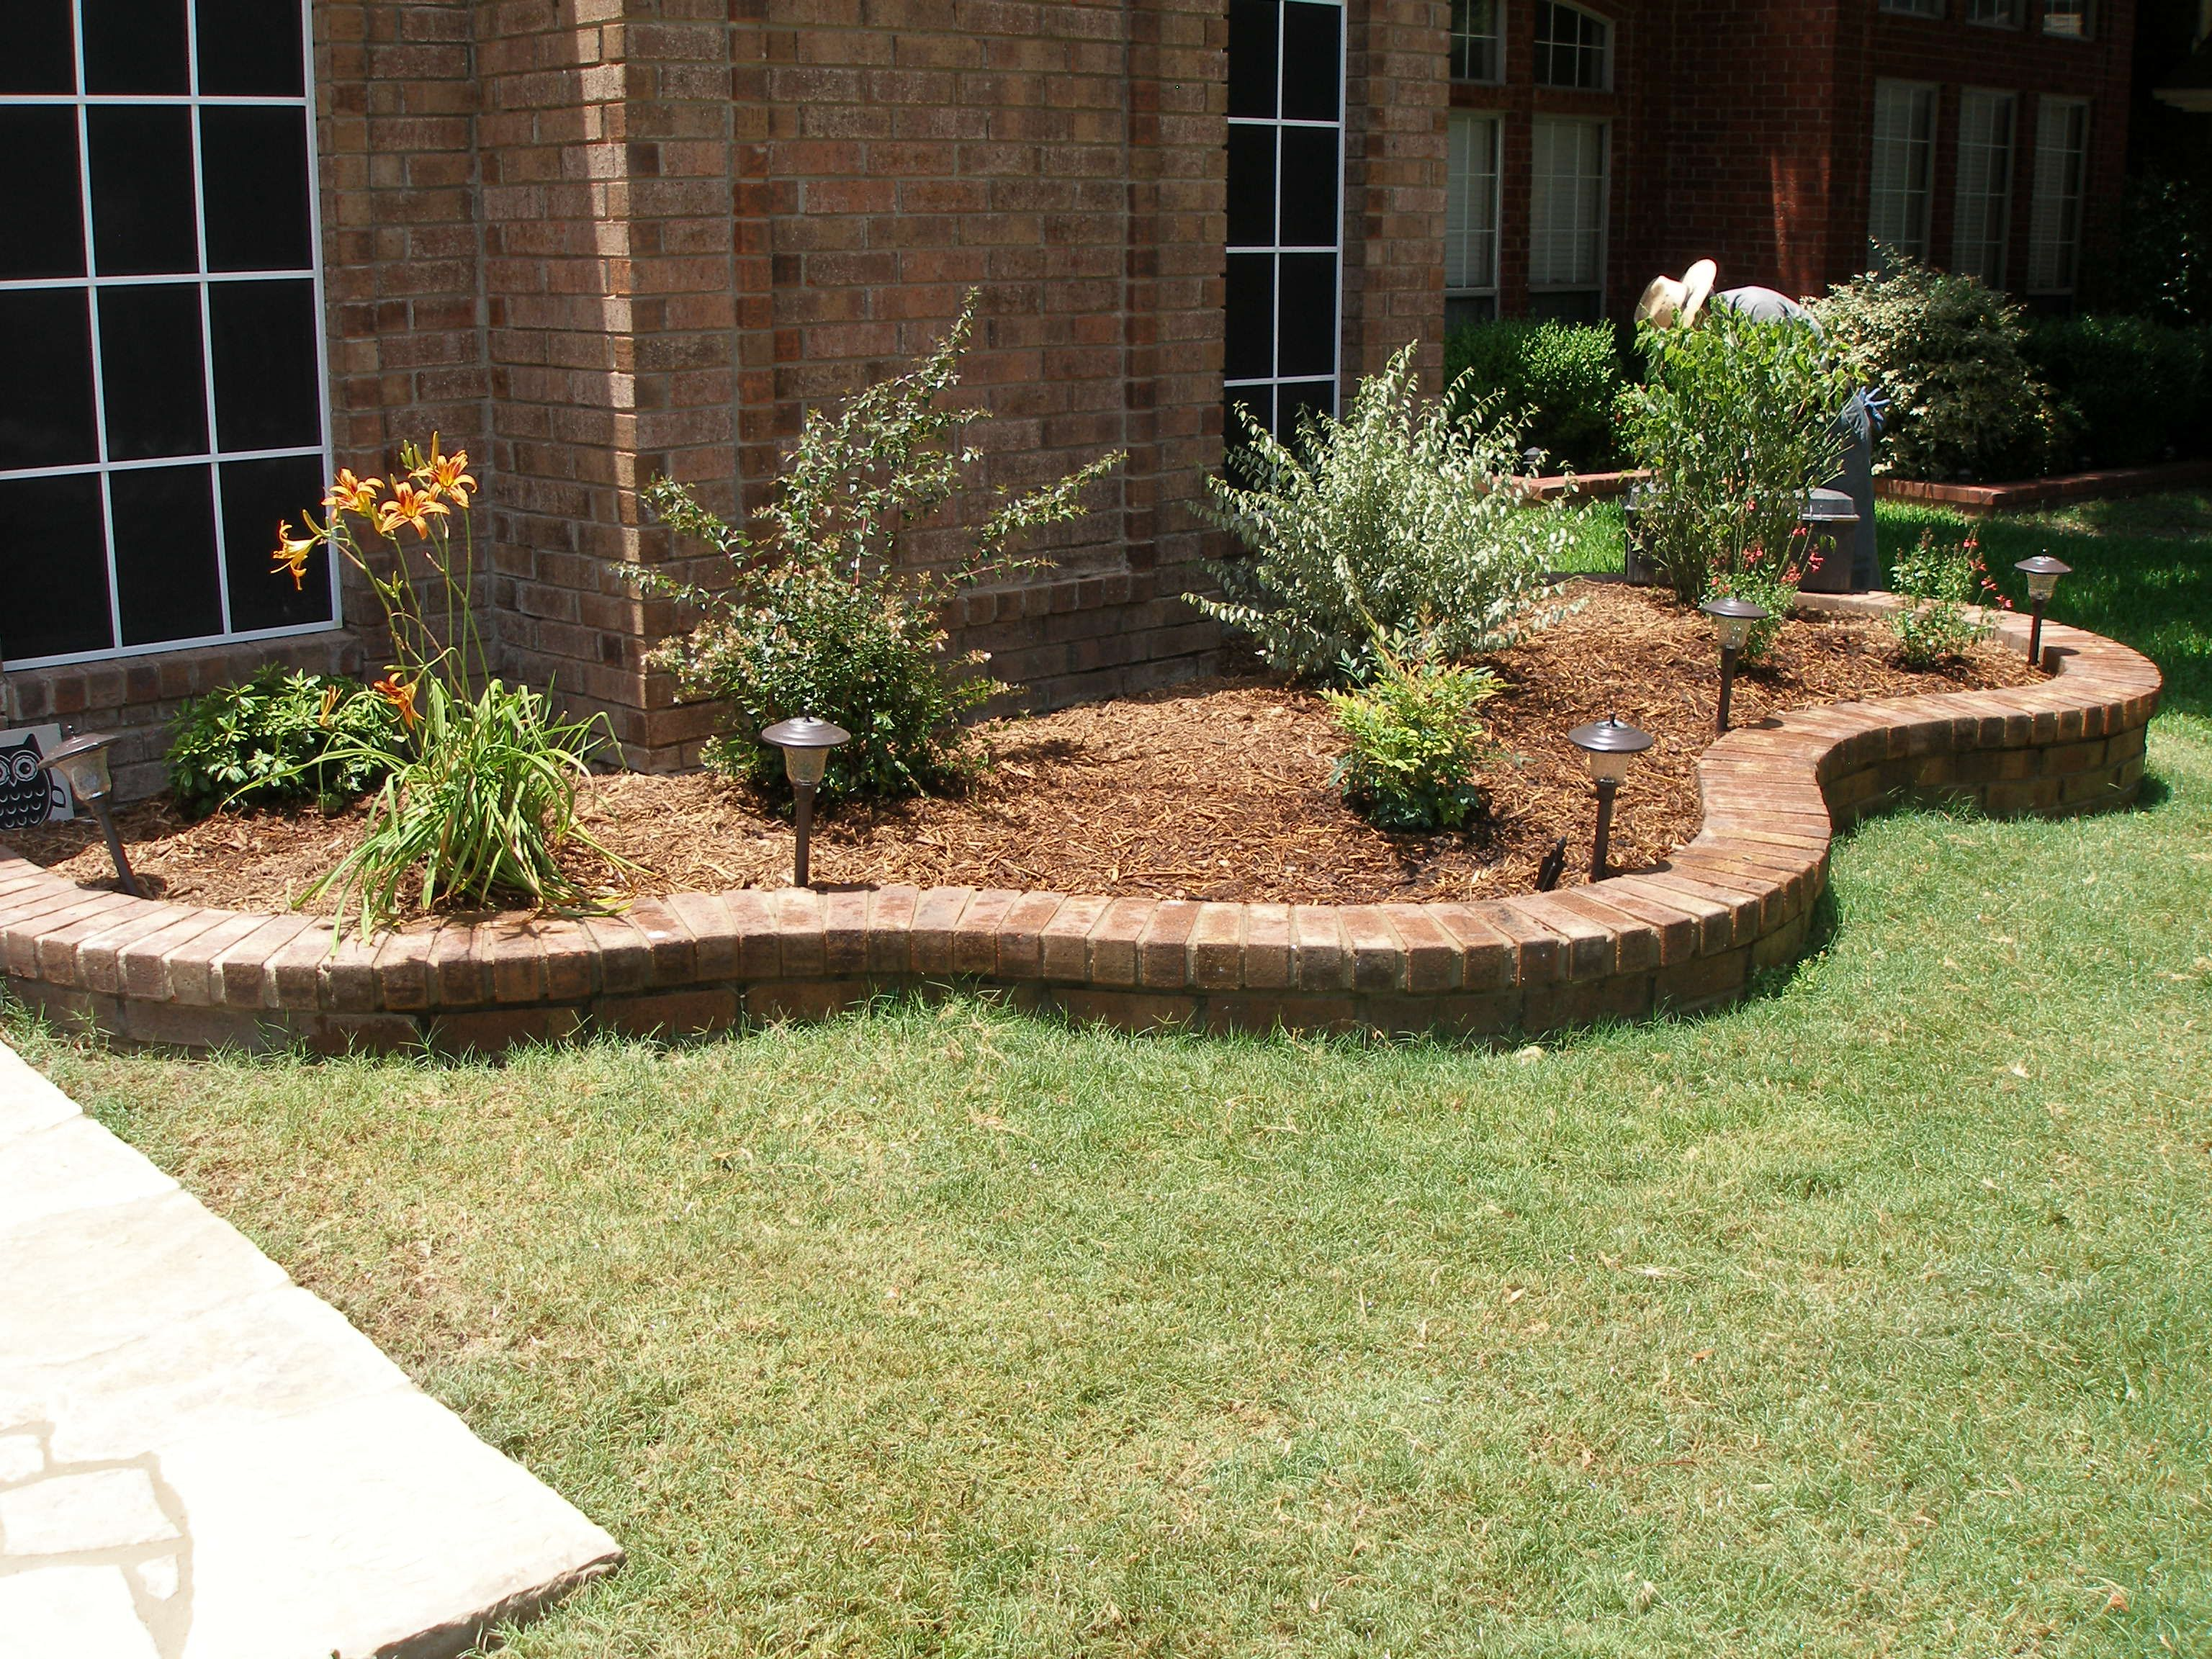 front yard edging by baldi gardens tx our latest work pinterest front yards yards and gardens. Black Bedroom Furniture Sets. Home Design Ideas